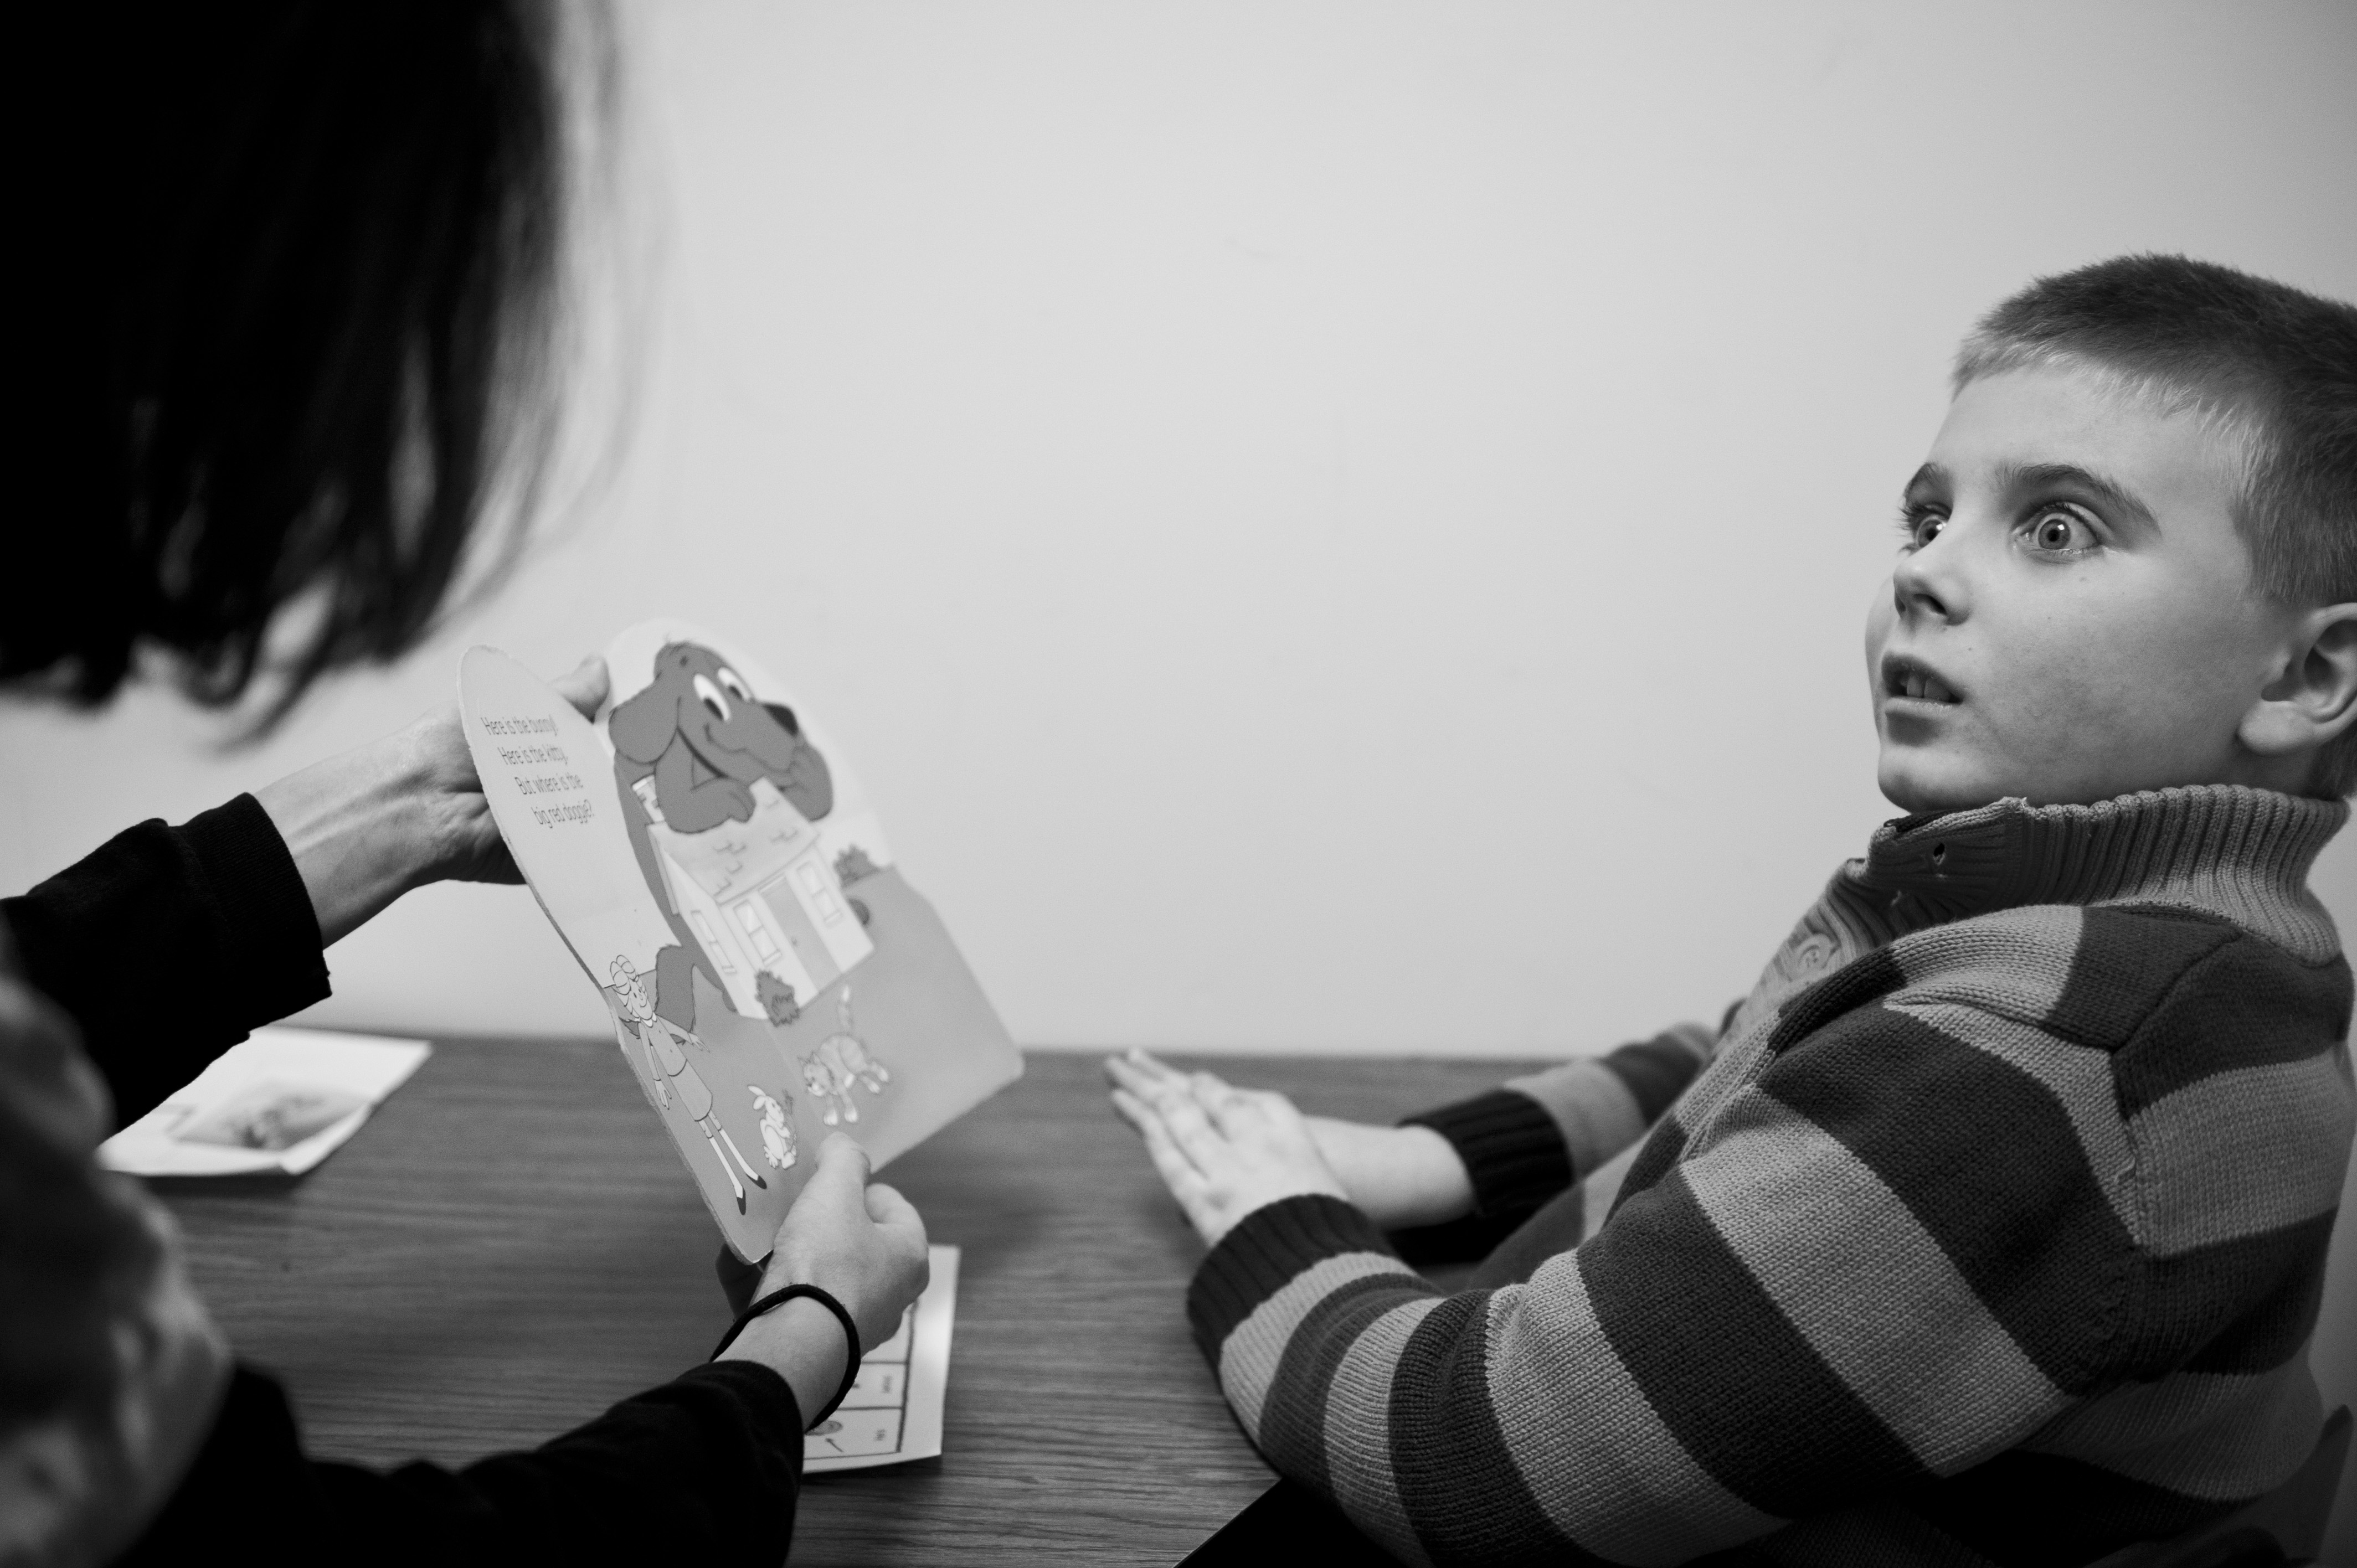 Marcus reacts to his teacher during a one-on-one reading session.